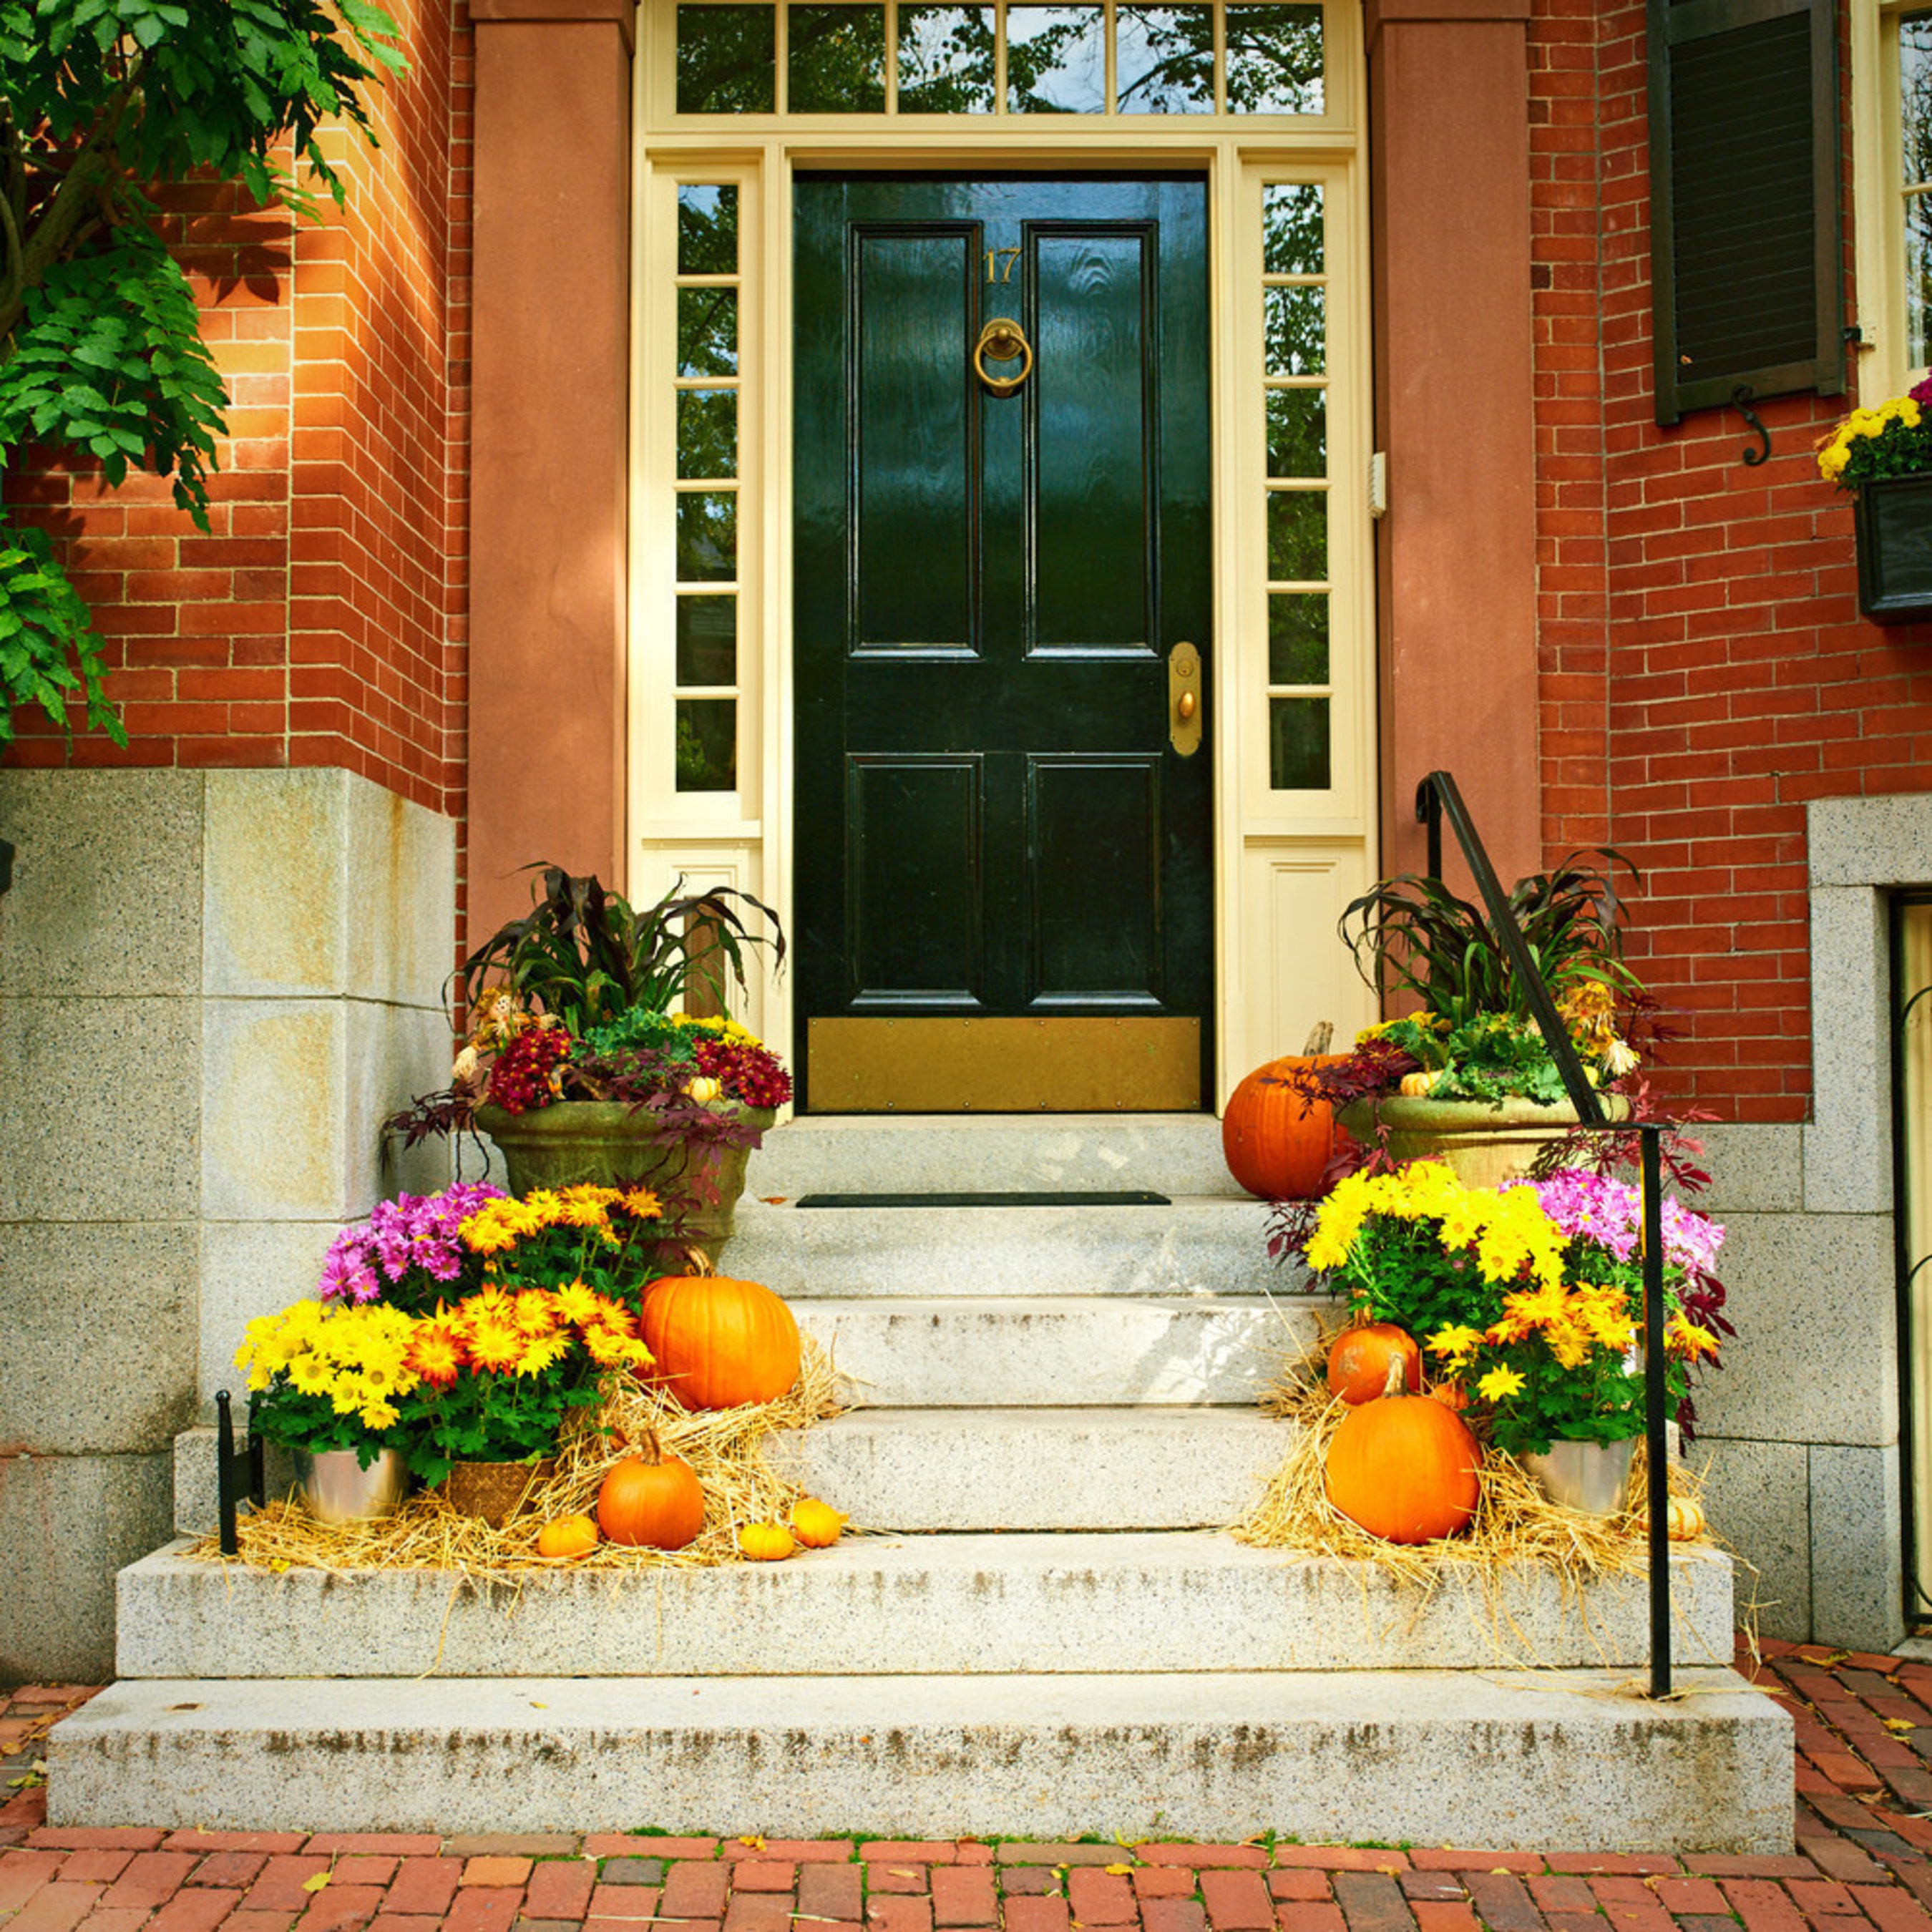 128 Plumbing, Heating, Cooling & Electric has advice to help homeowners avoid leaving their home vulnerable to unexpected dangers while they are away for the holidays